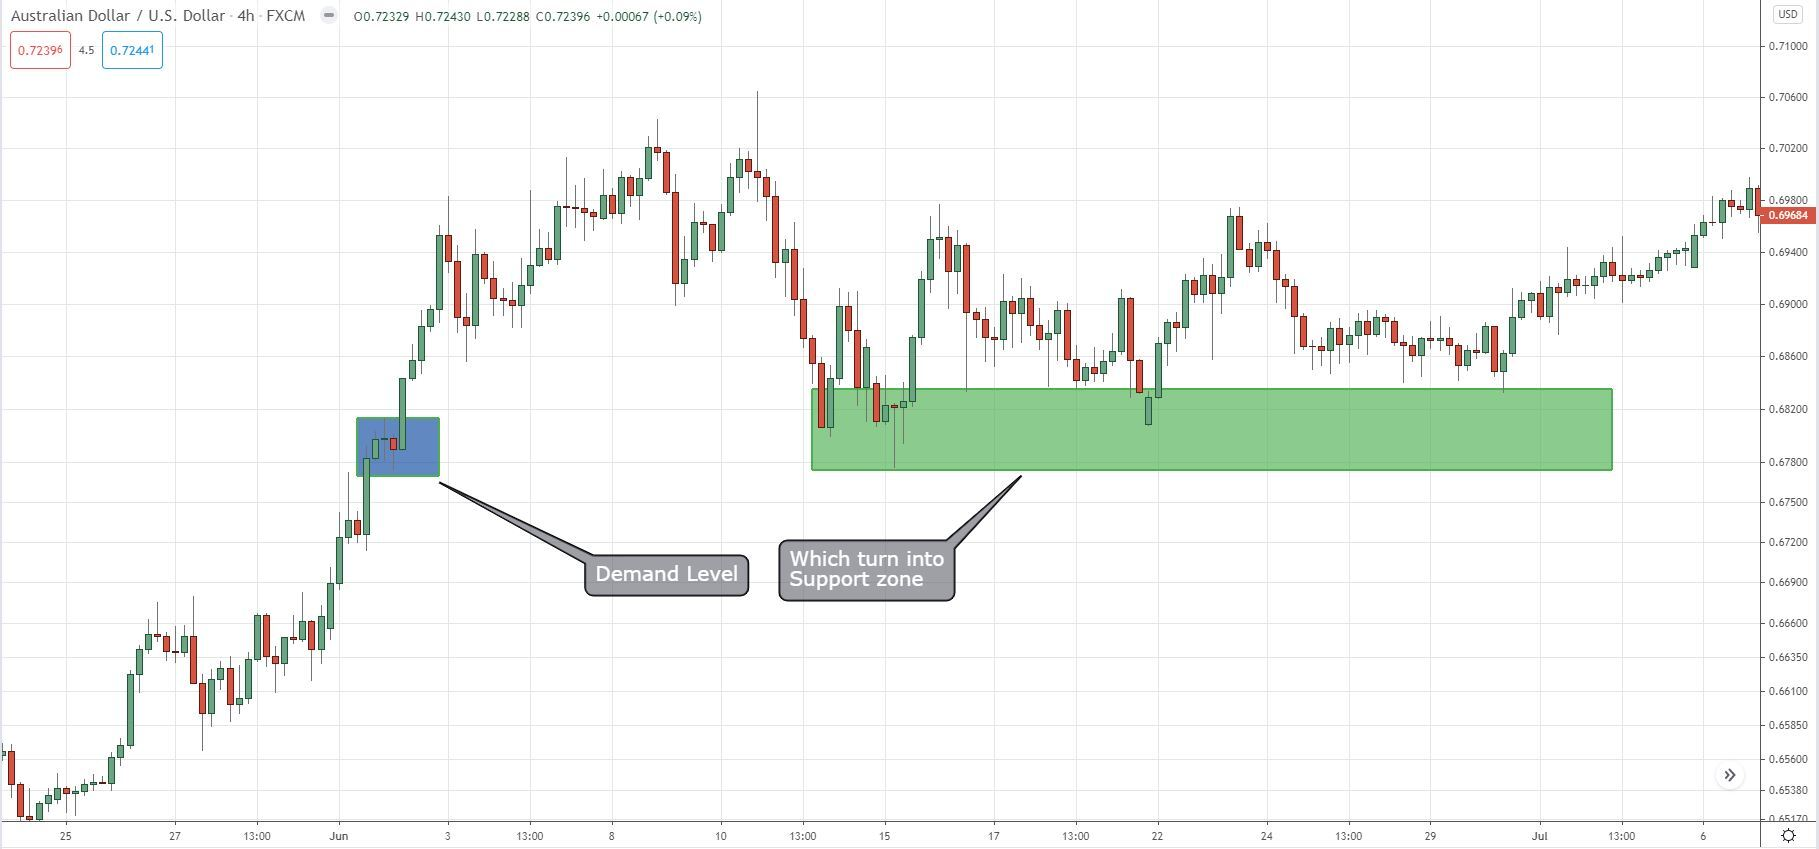 Demand level which turns to into a support zone